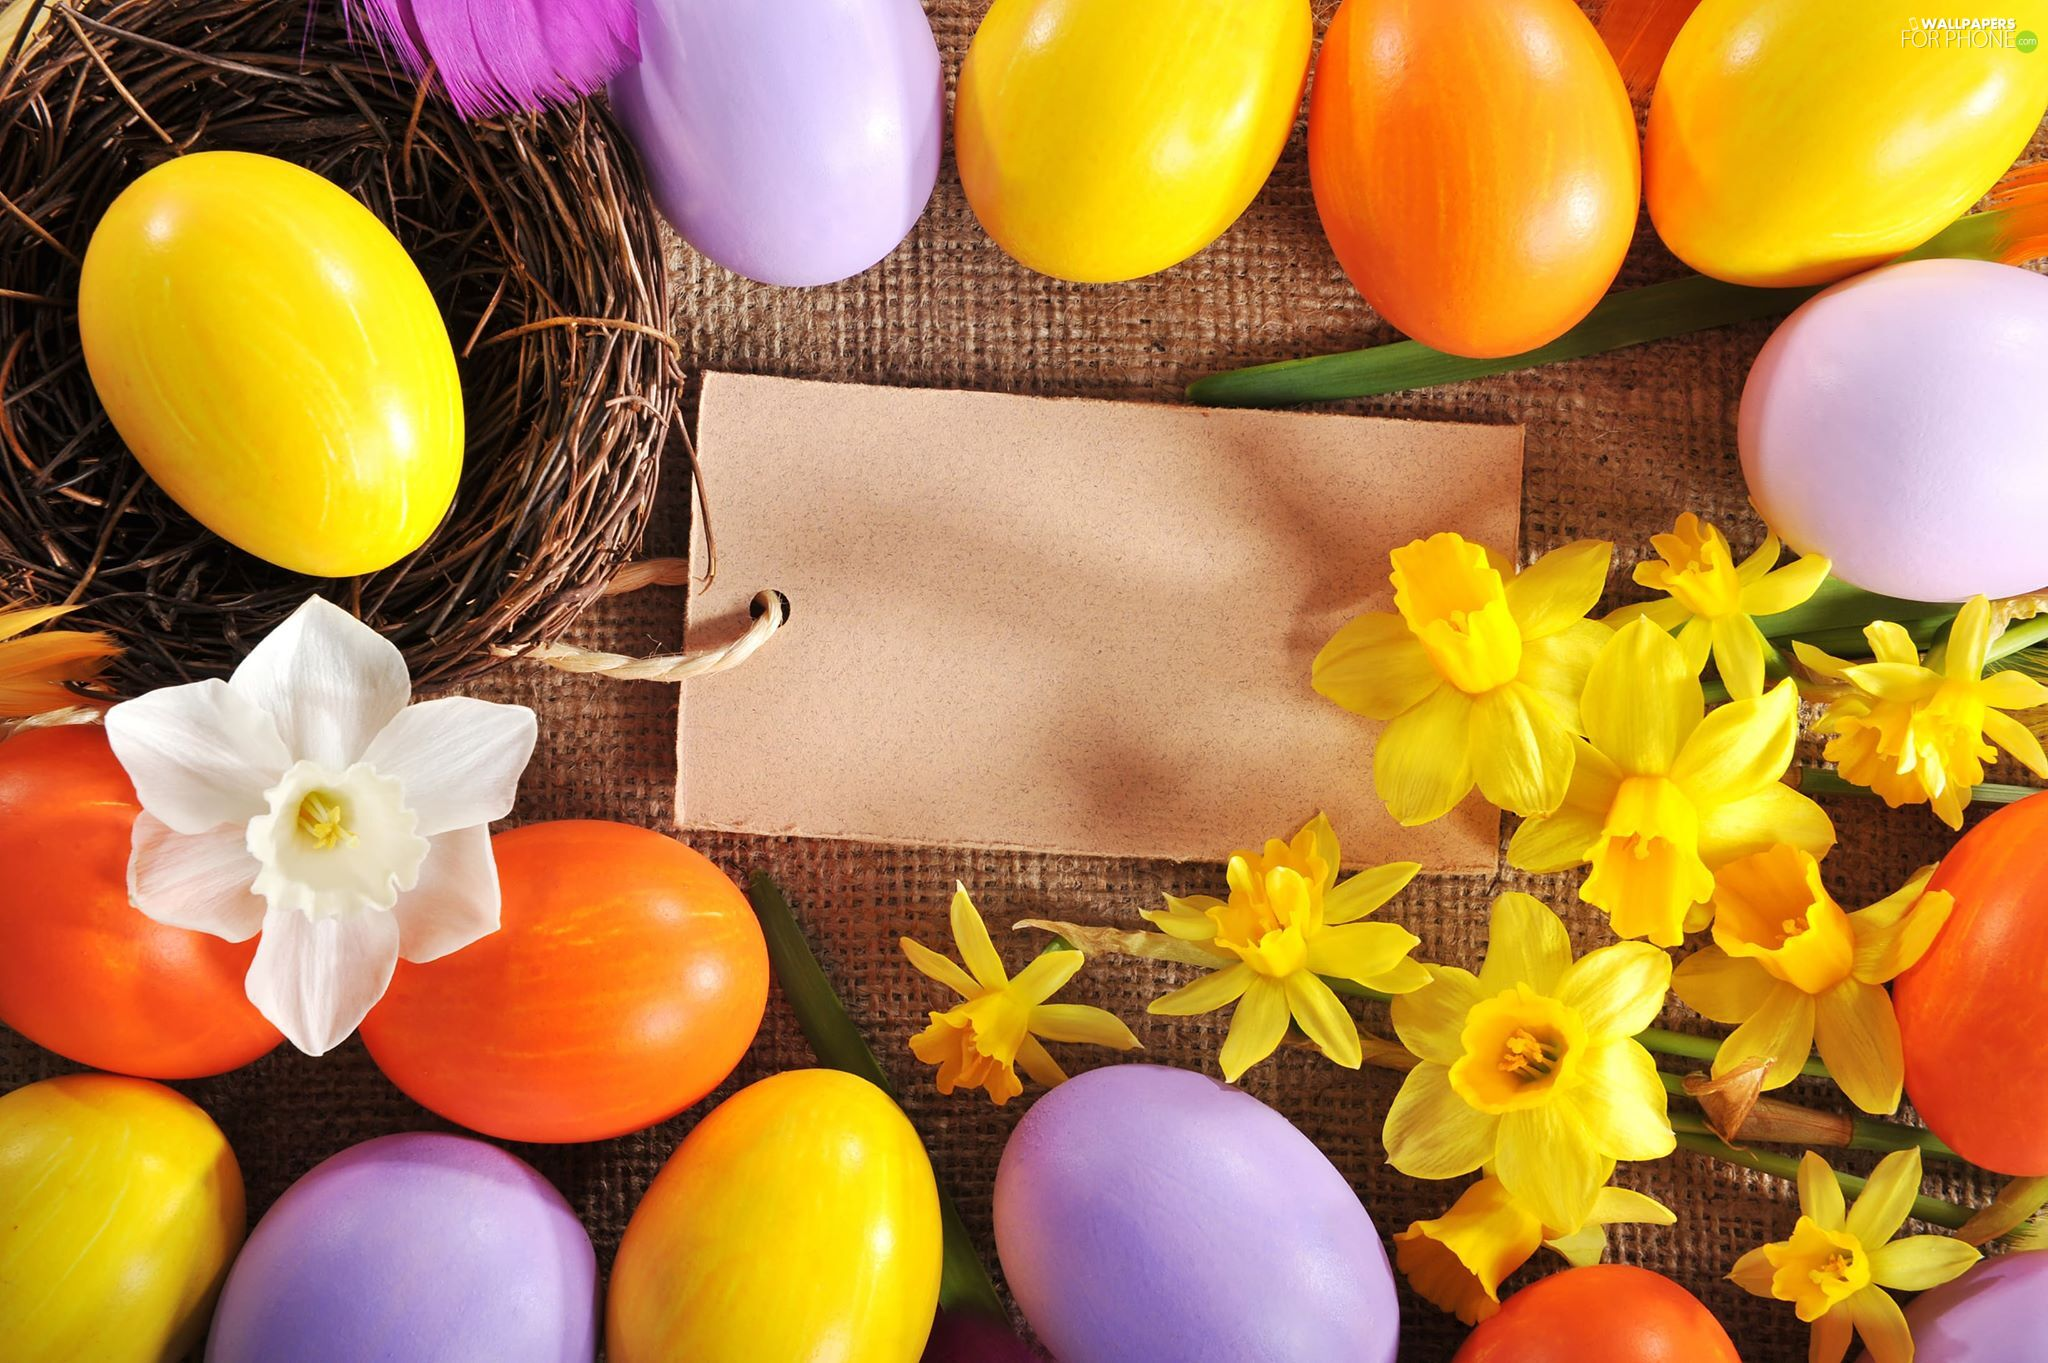 Daffodils, chit, eggs, nest, Easter